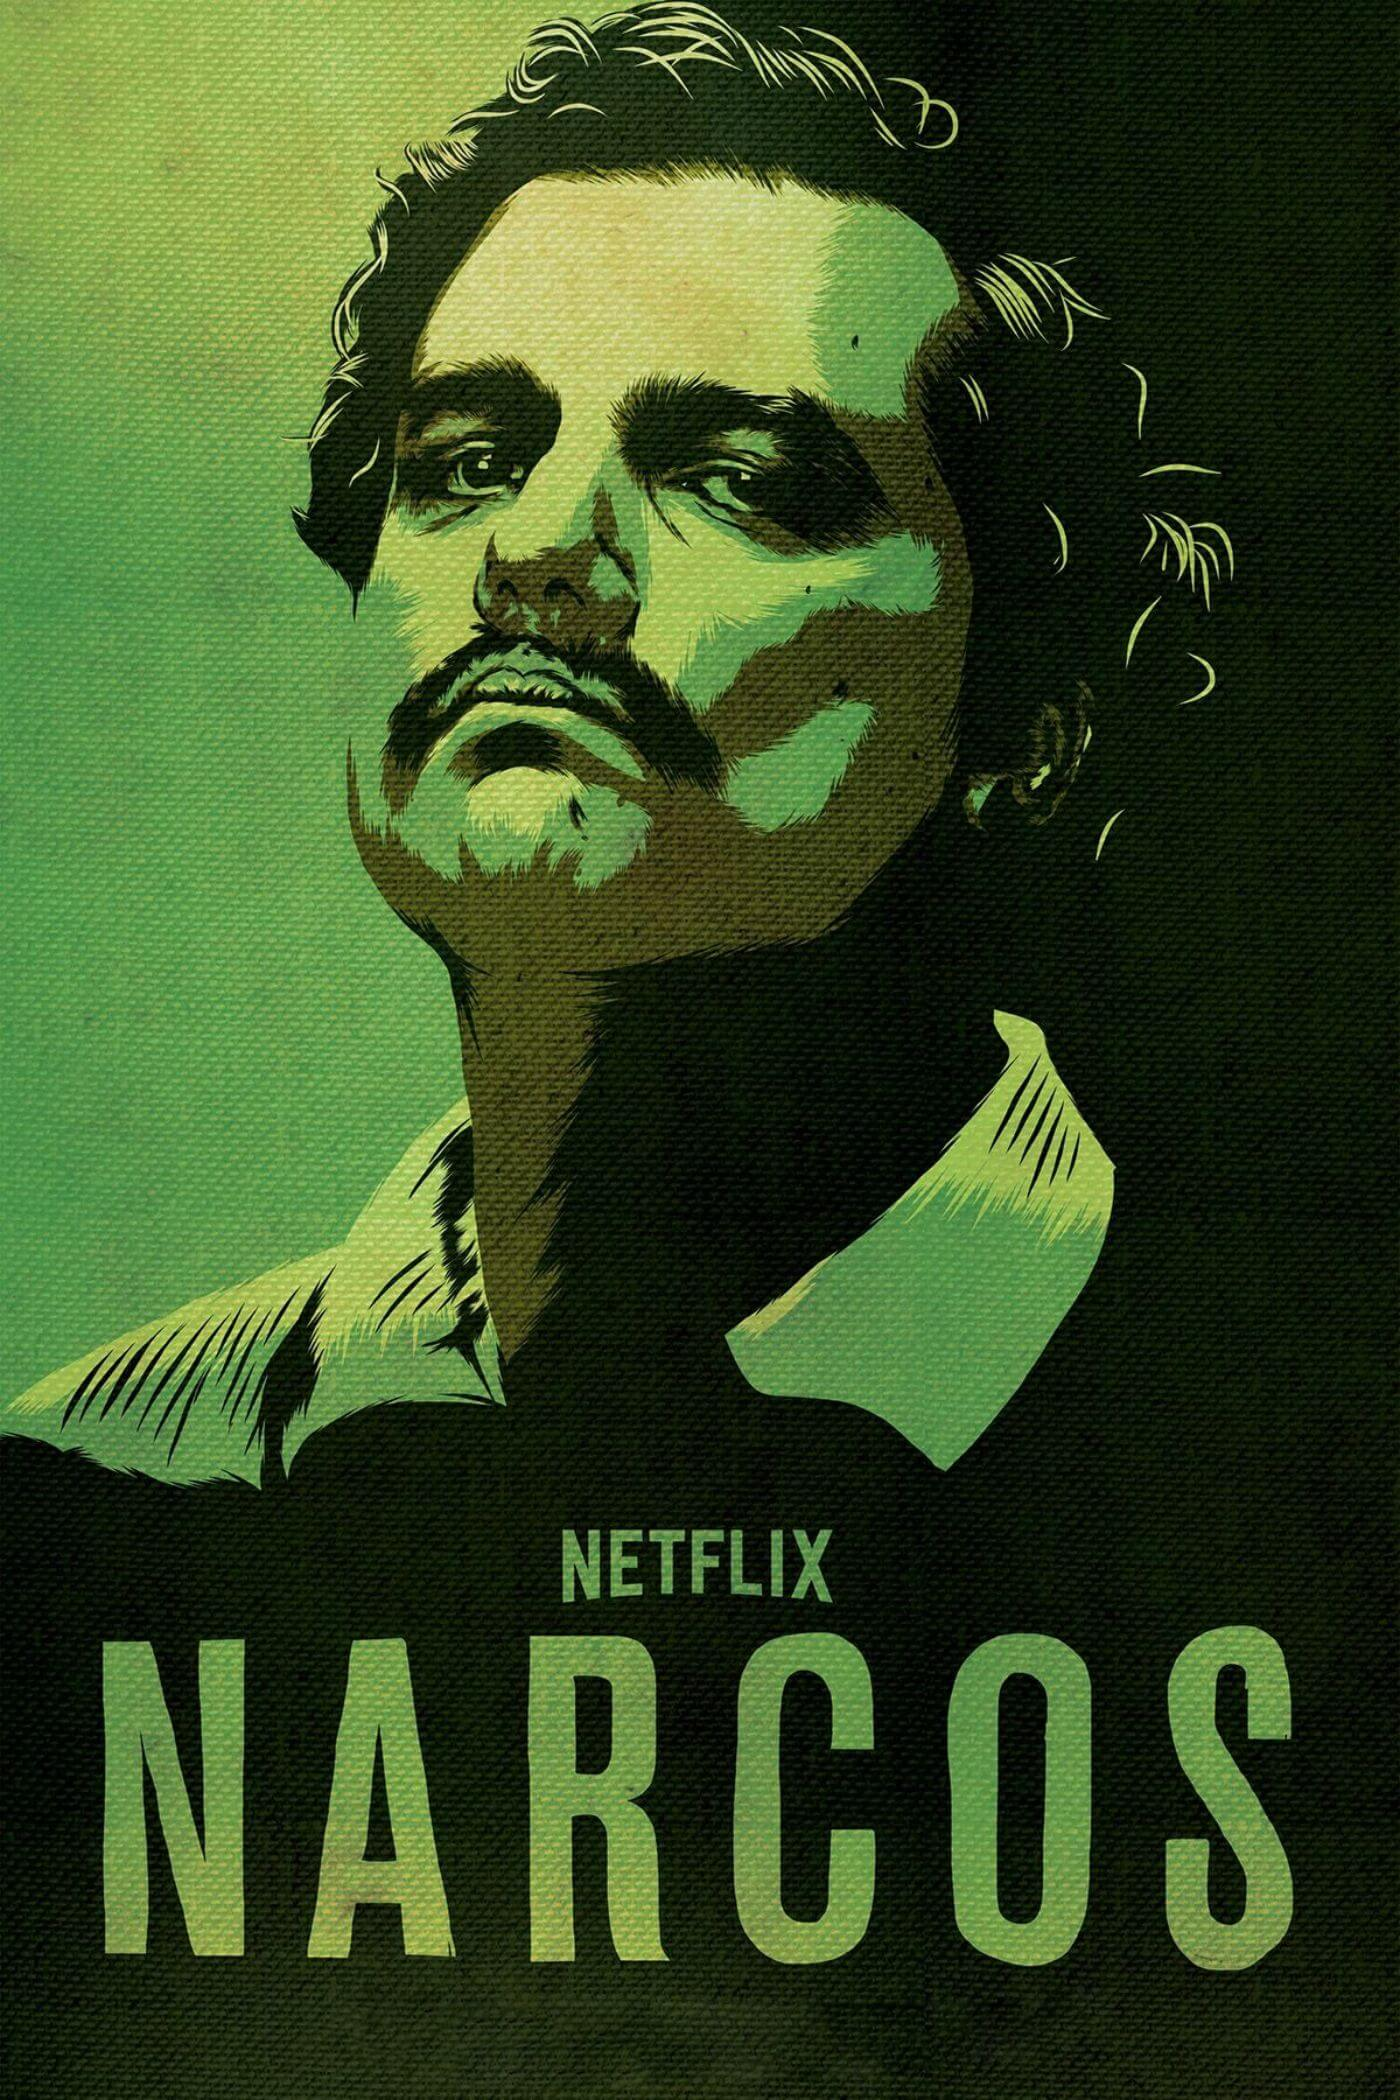 Narcos - Pablo Escobar - Netflix TV Show Poster Fan Art